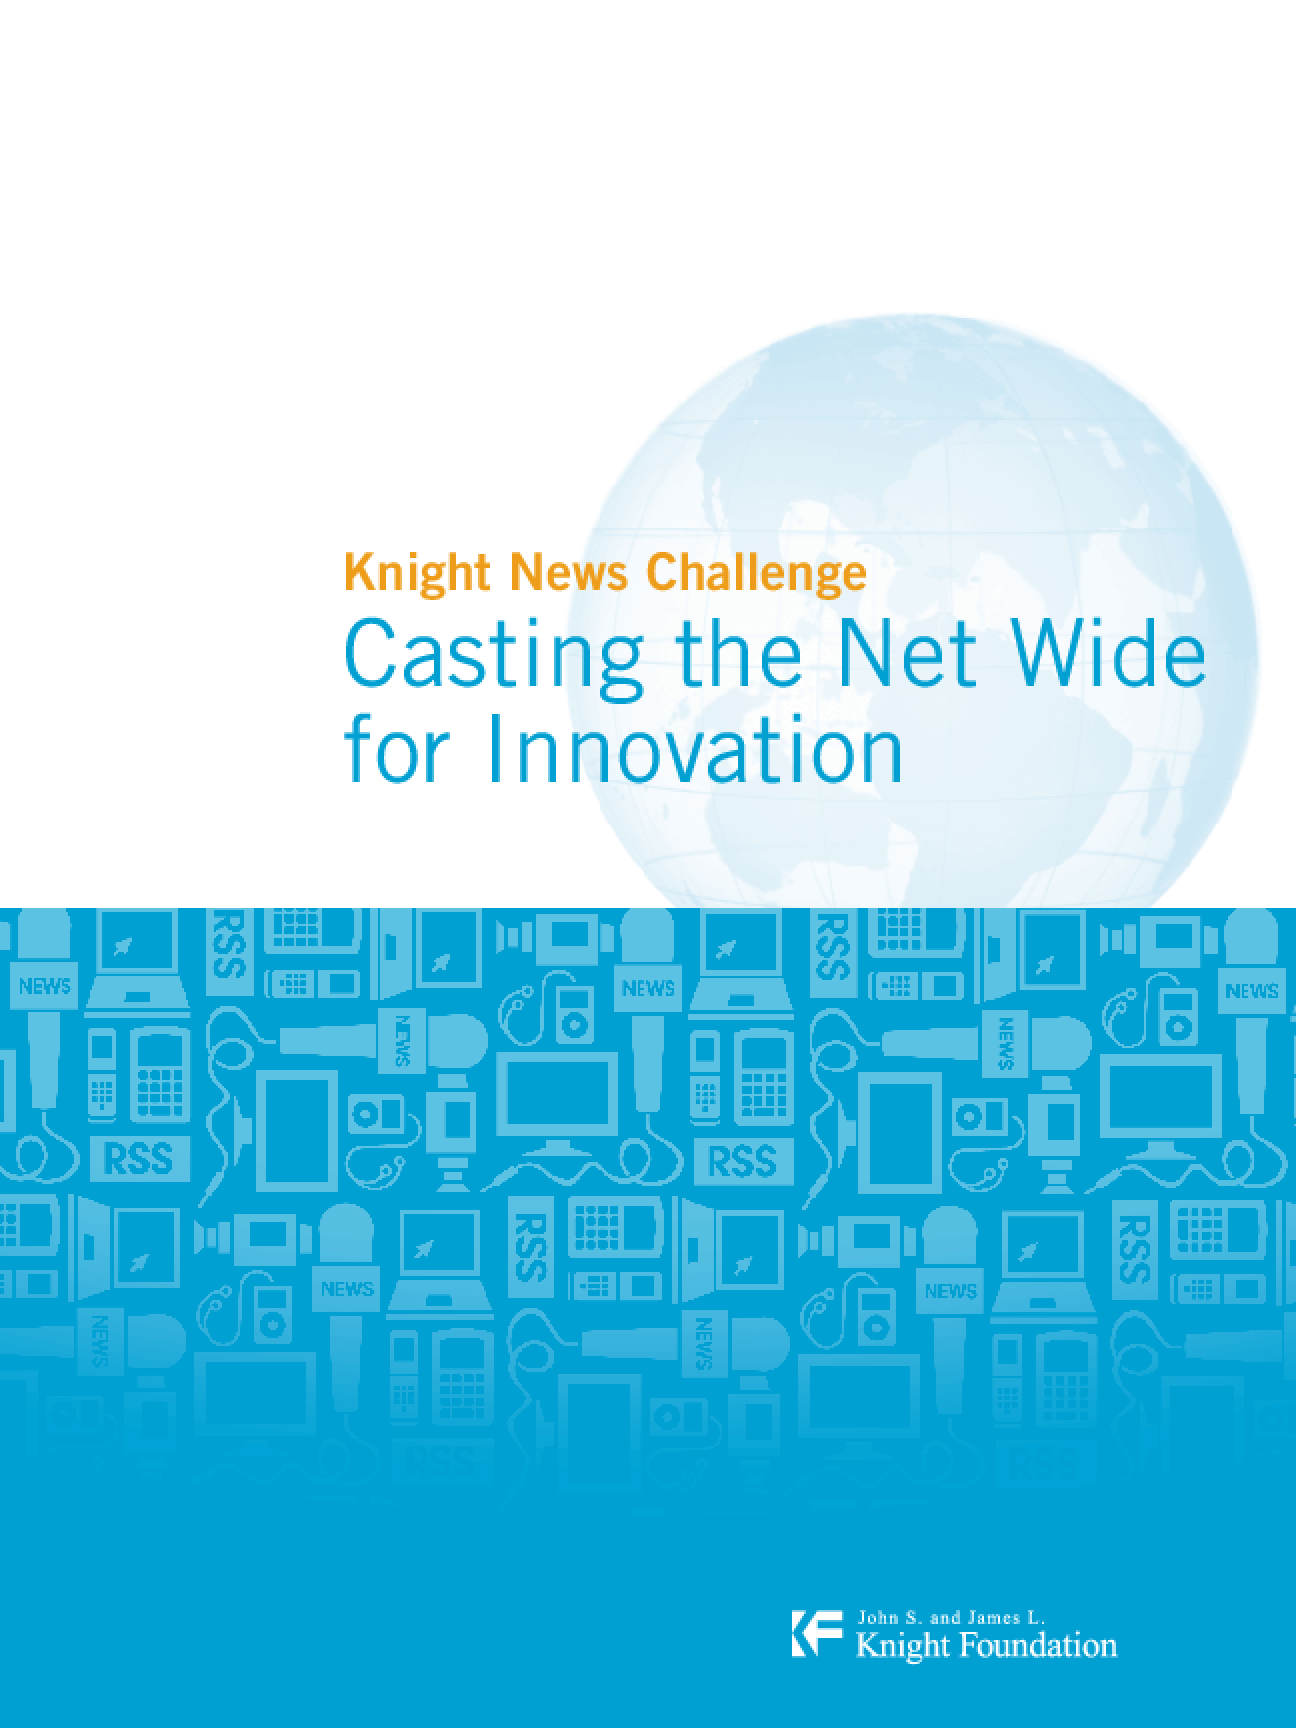 Knight News Challenge: Casting the Net Wide for Innovation